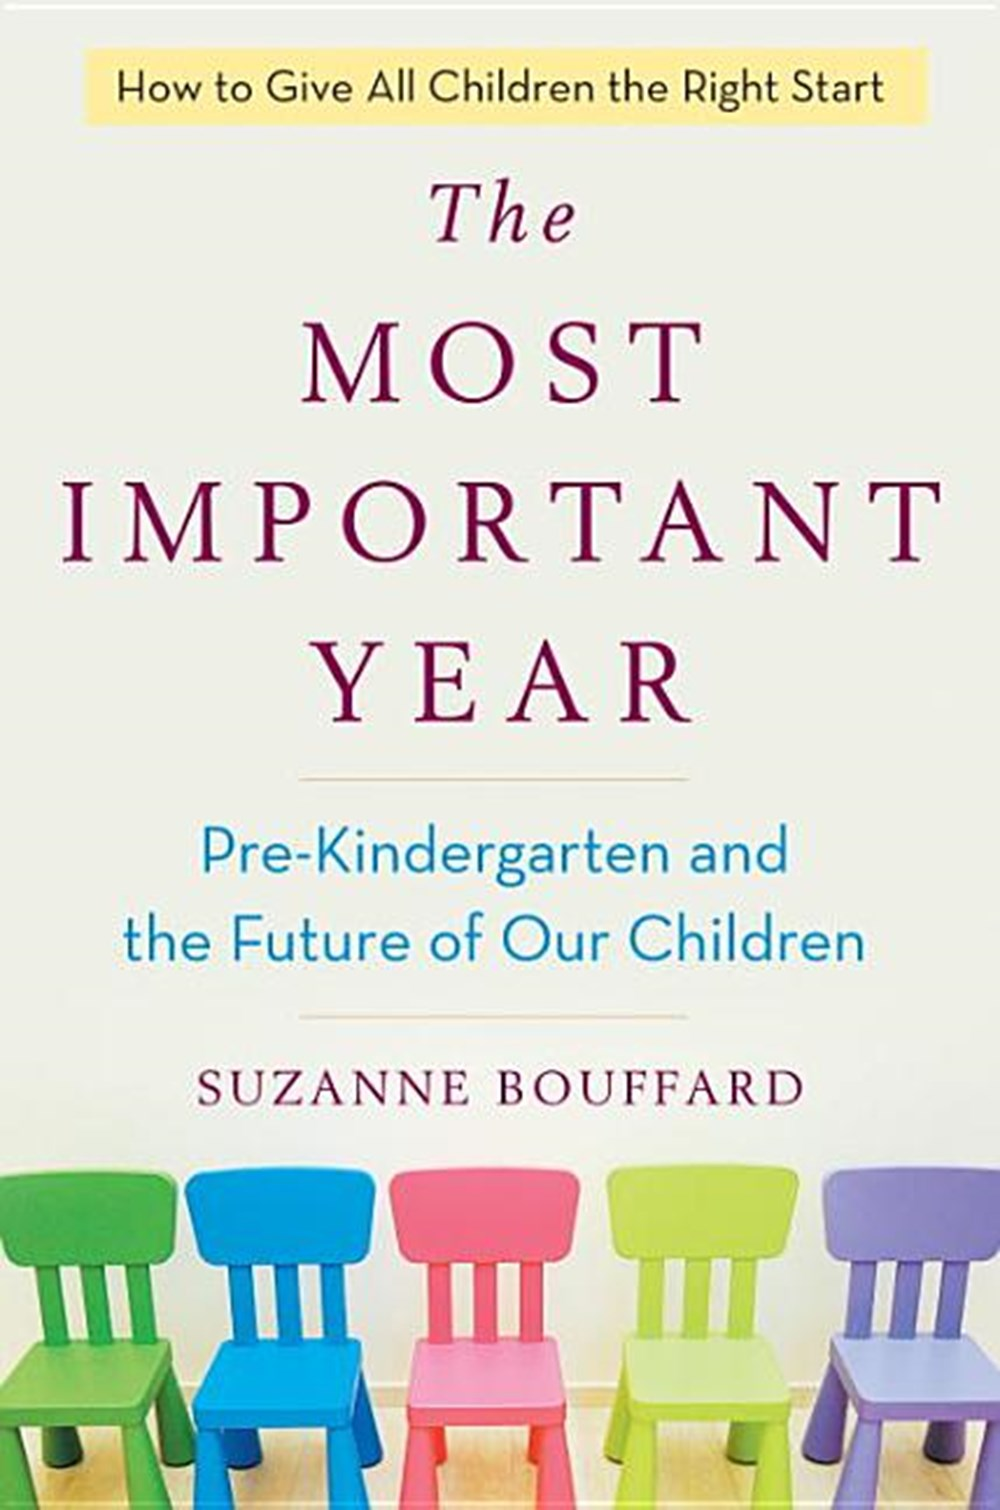 Most Important Year Pre-Kindergarten and the Future of Our Children